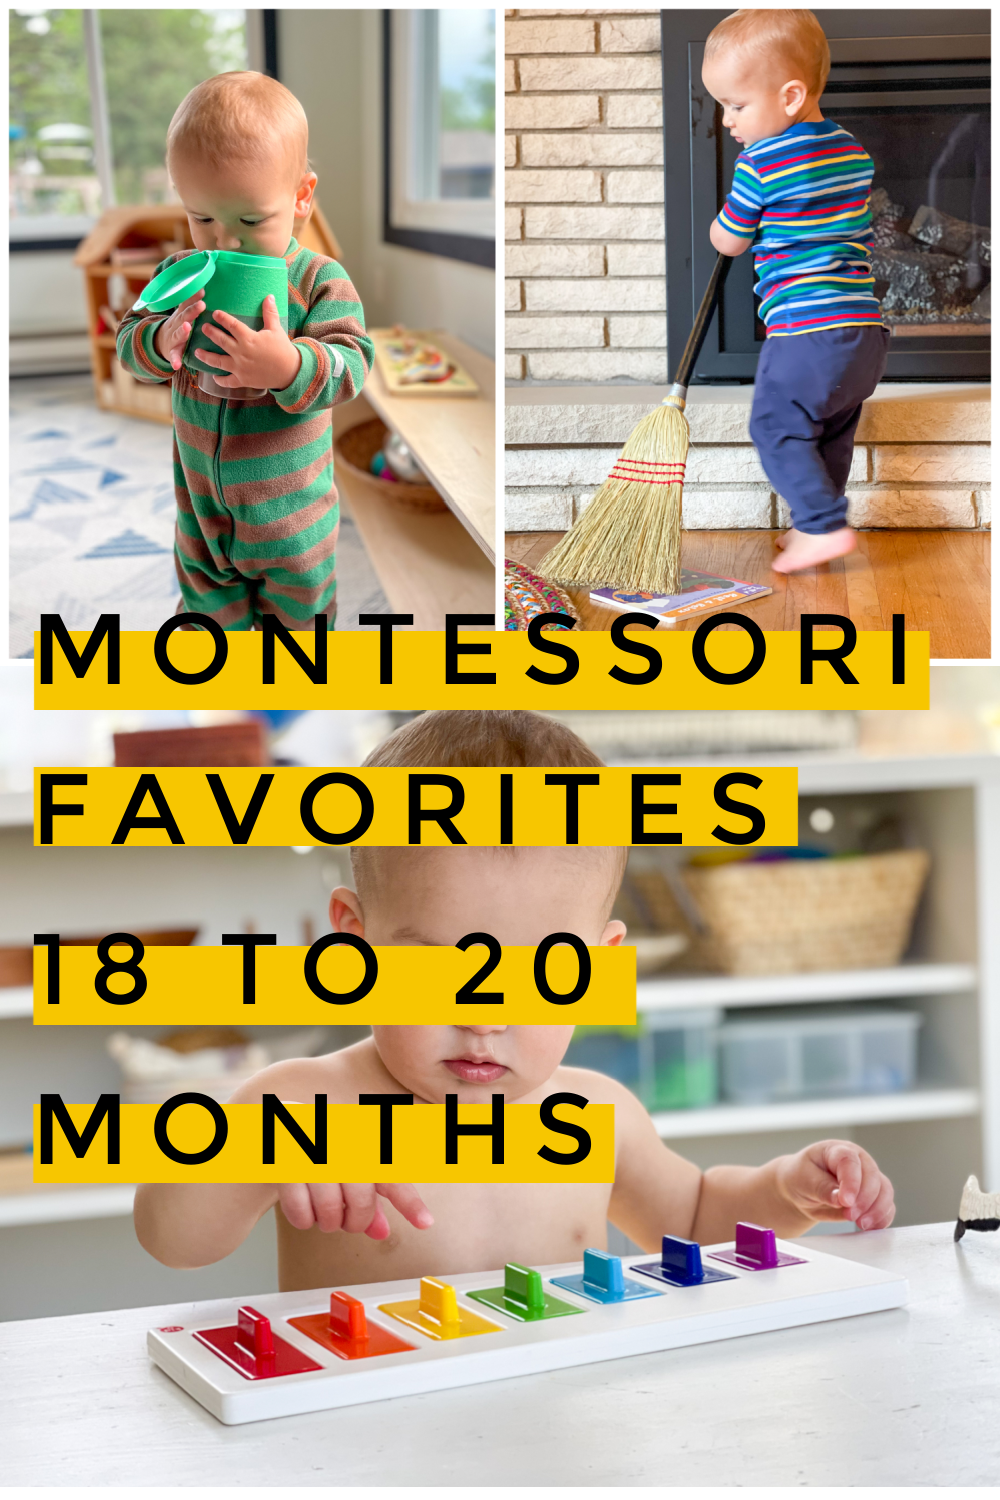 A look at some favorite Montessori inspired toys and activities from 18 to 20 months old. These simple, fun activities are perfect for 1-year-olds.